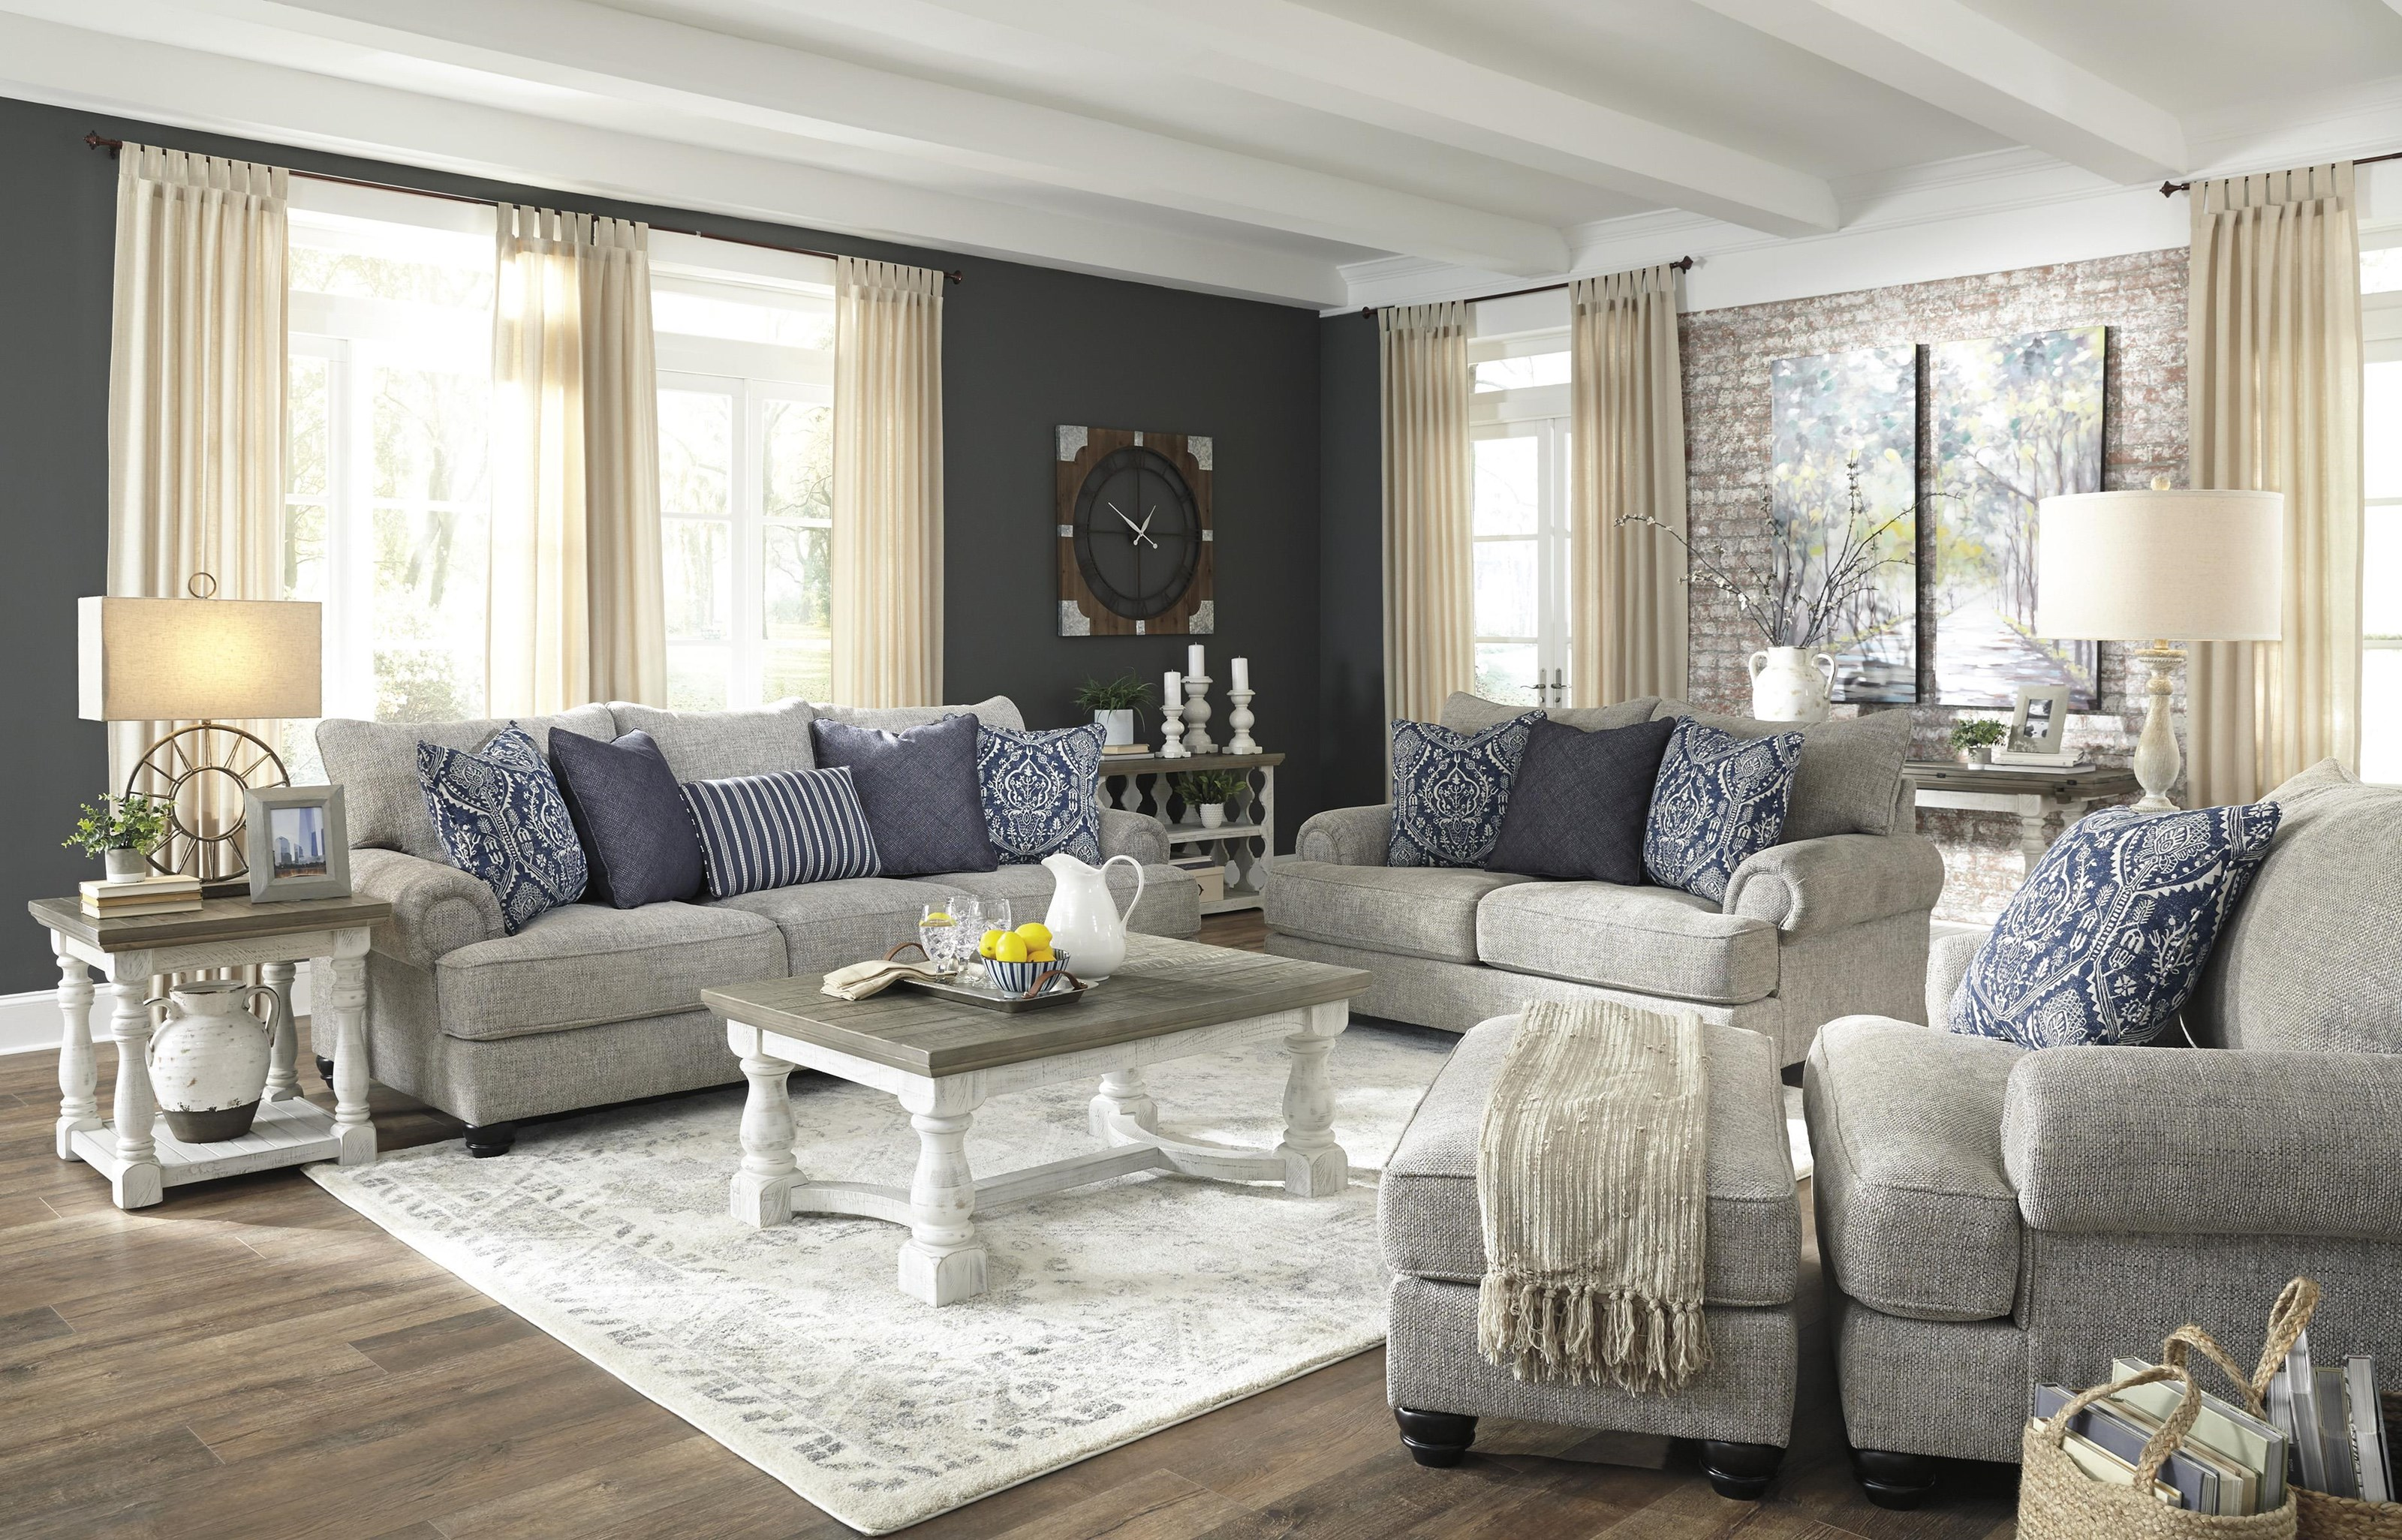 Ashley Furniture Morren 22301238 23 14 Dusk Sofa Chair And Ottoman Set Sam Levitz Outlet Stationary Living Room Groups